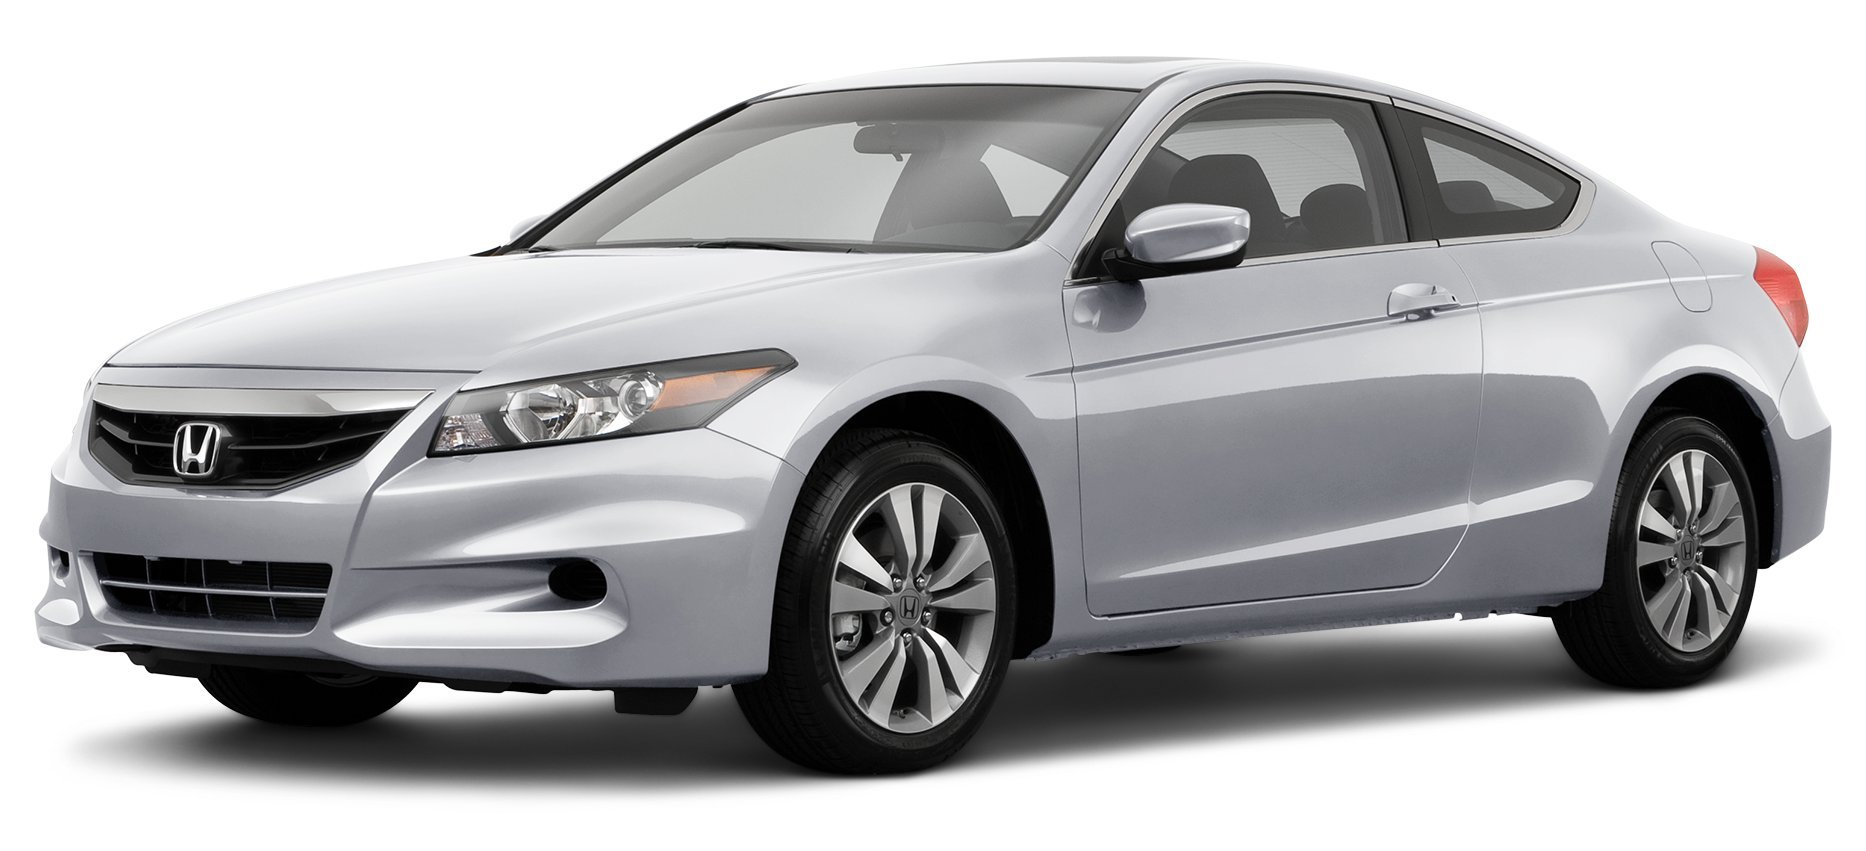 2011 honda accord reviews images and specs. Black Bedroom Furniture Sets. Home Design Ideas